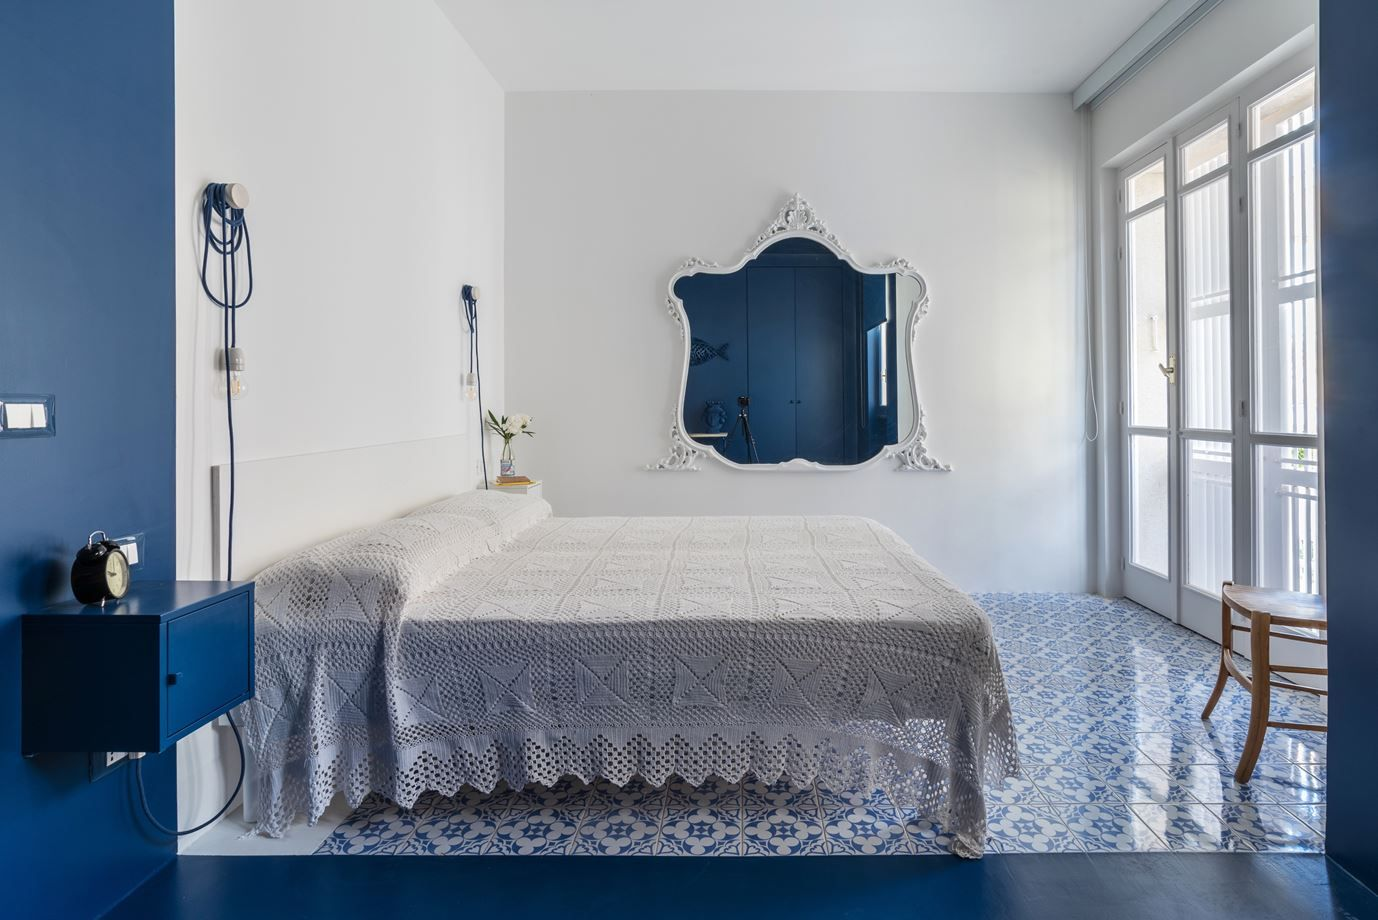 Try A Minimalist Bedroom Design For Less Stress And A Good Night S Sleep